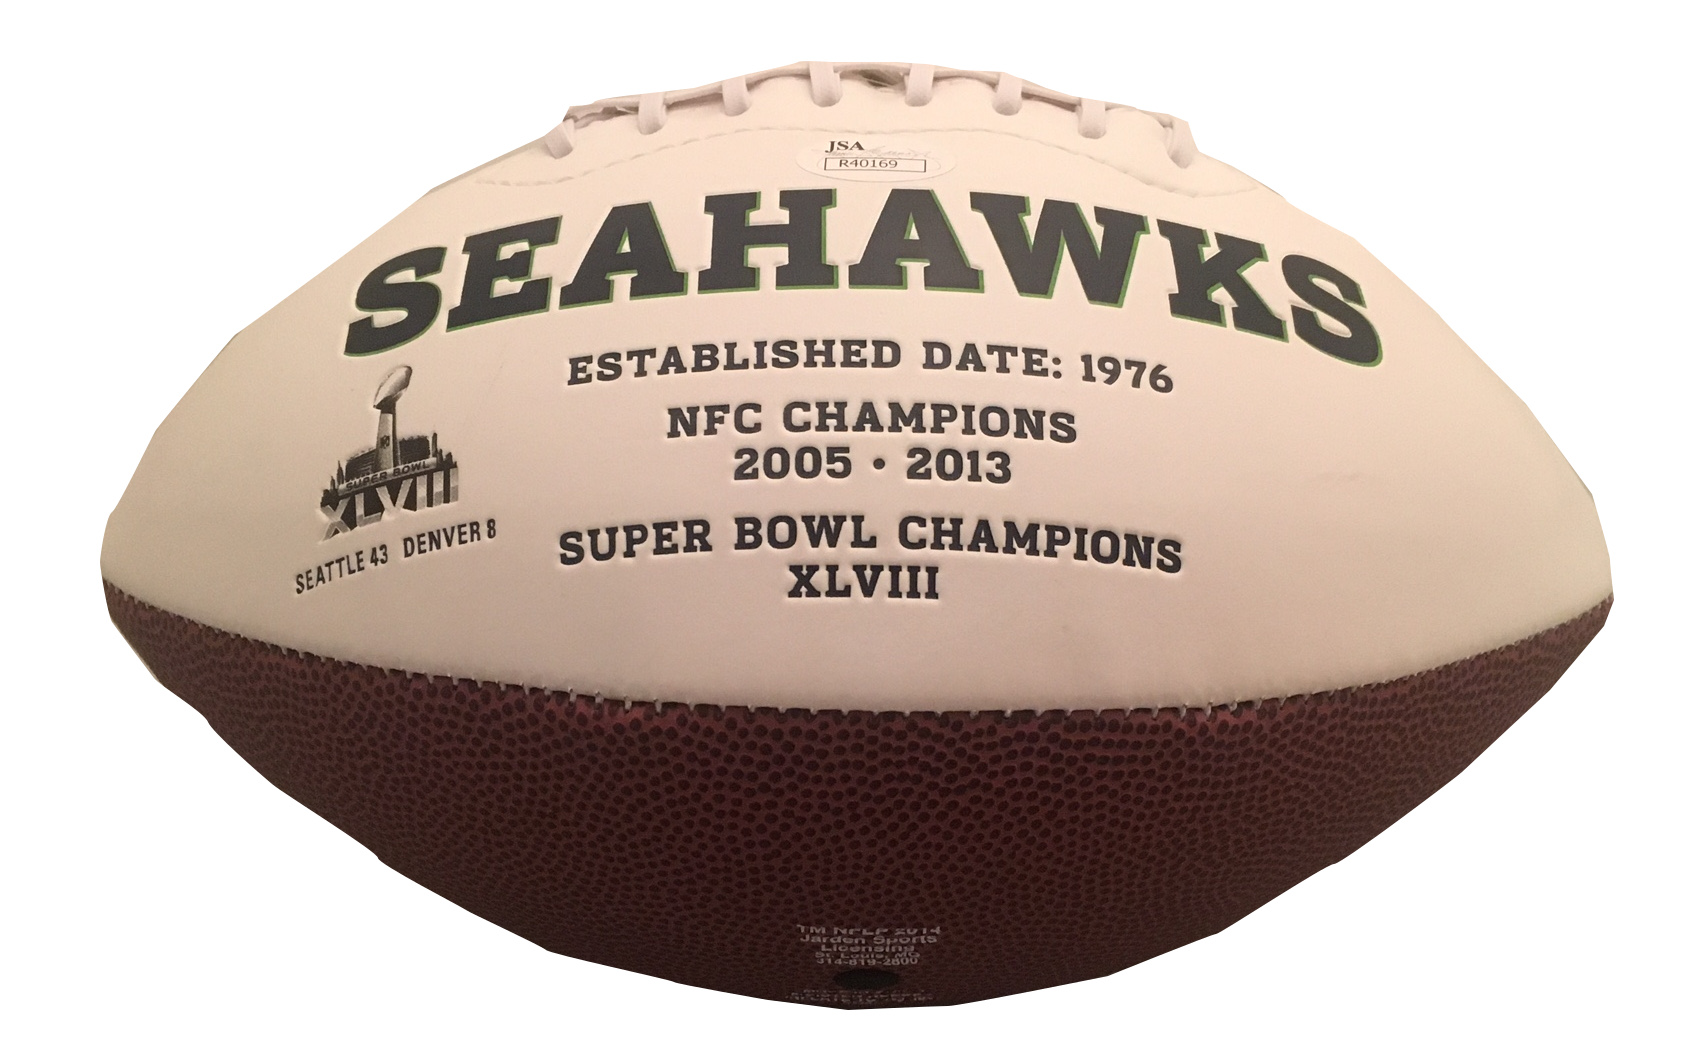 Russell Wilson Signed Seahawks Football from Powers Autographs